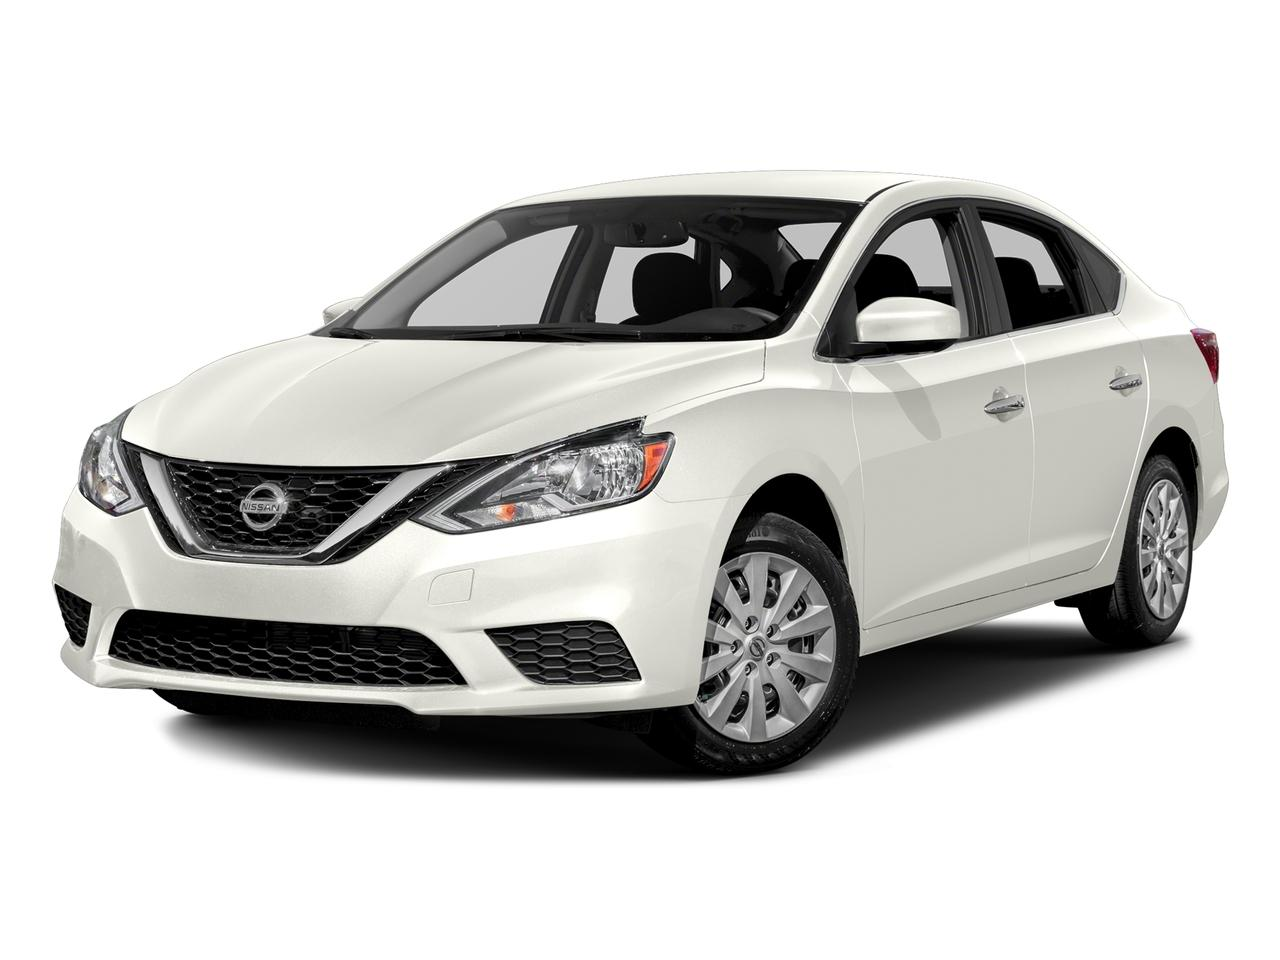 2018 Nissan Sentra Vehicle Photo in Oshkosh, WI 54904